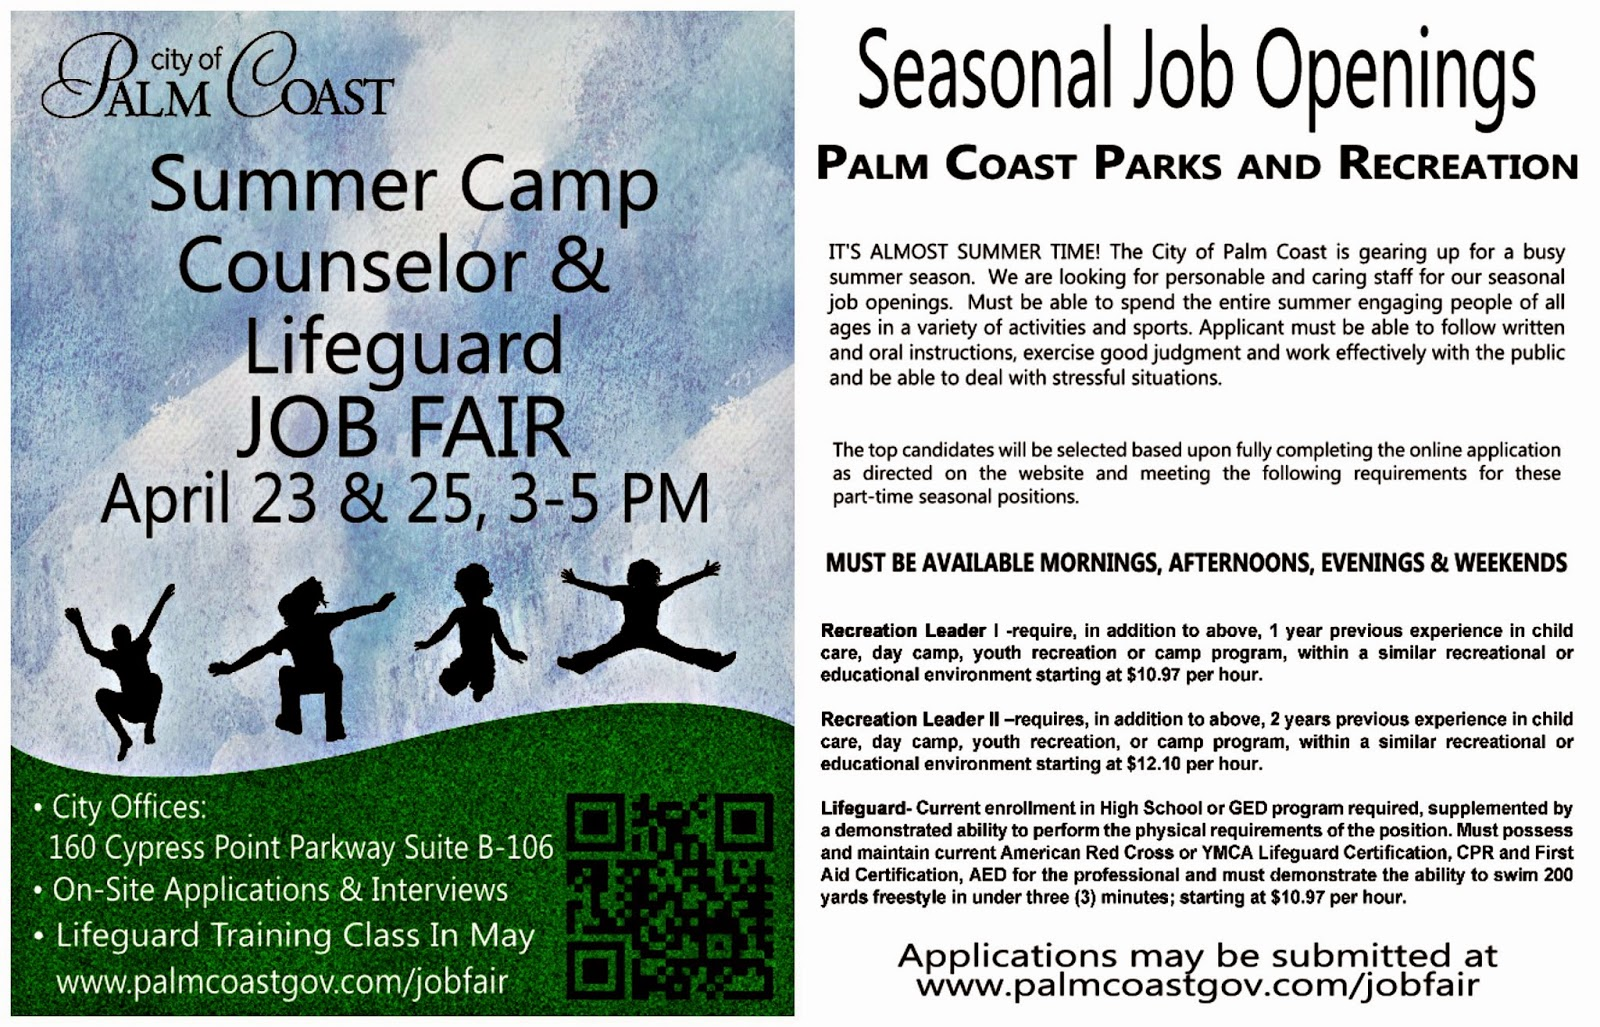 City of Palm Coast Summer Camp Counselor Lifeguard Job Fair – Camp Counselor Job Description